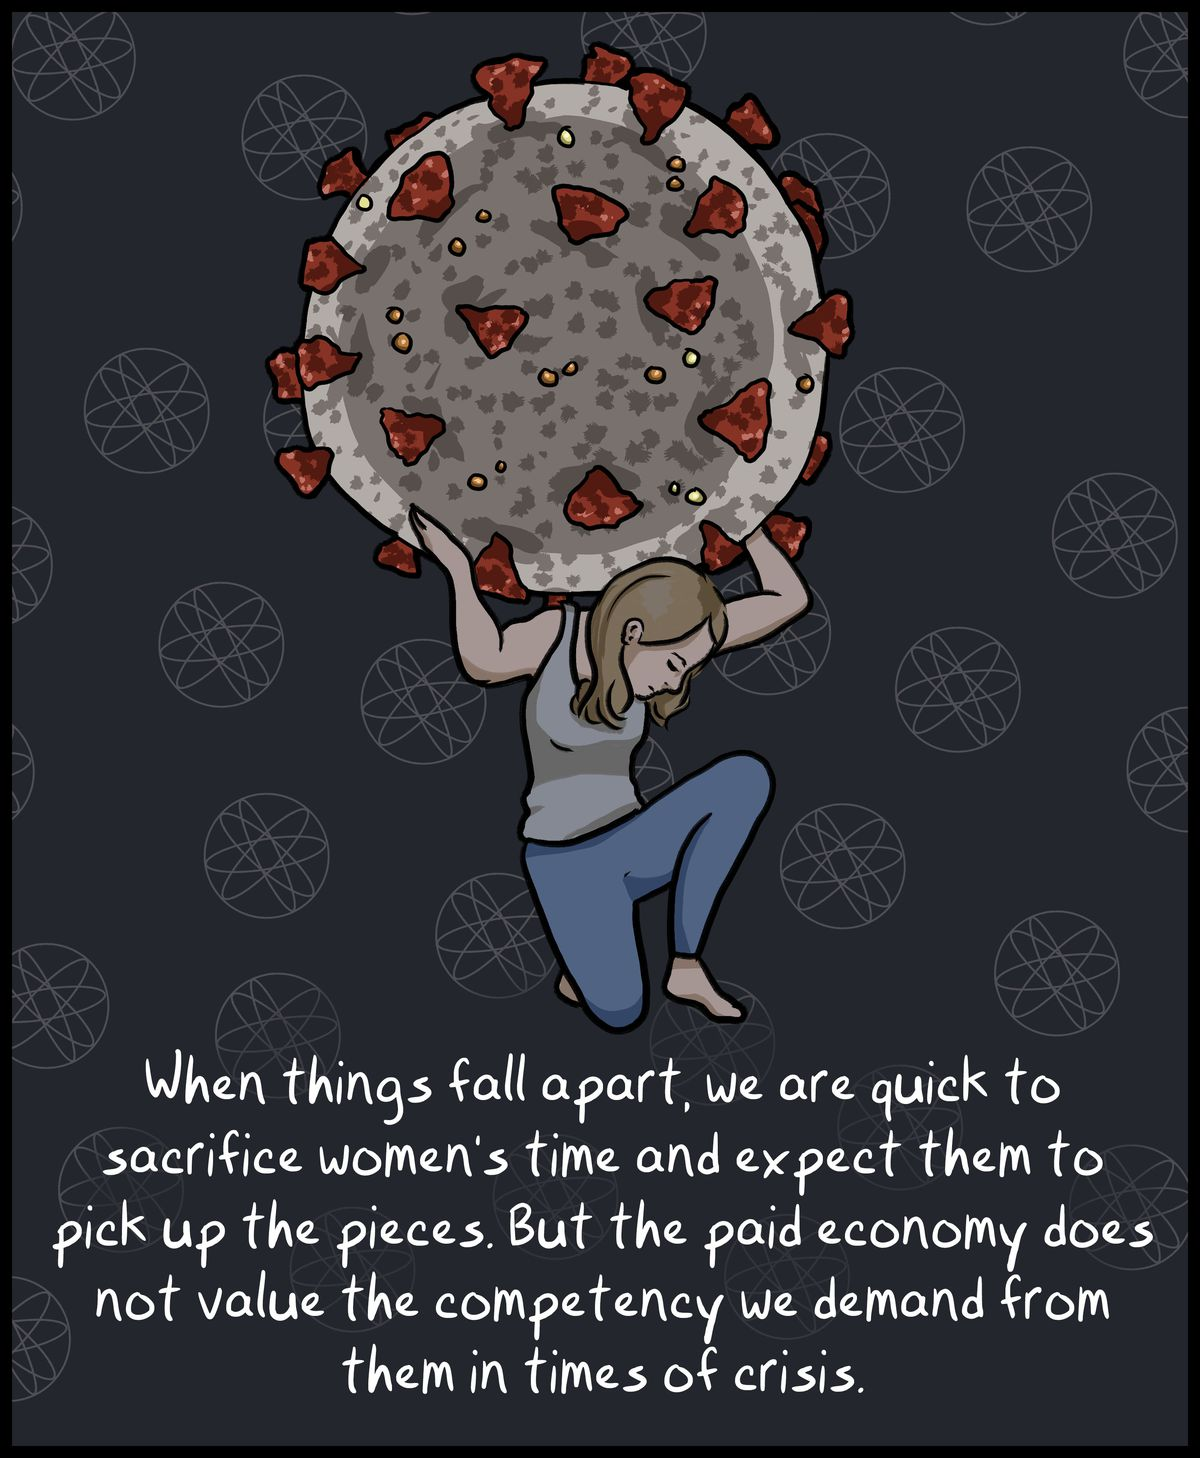 When things fall apart, we are quick to sacrifice women's time and expect them to pick up the pieces. But the paid economy does not value the competency we demand from them in times of crisis.